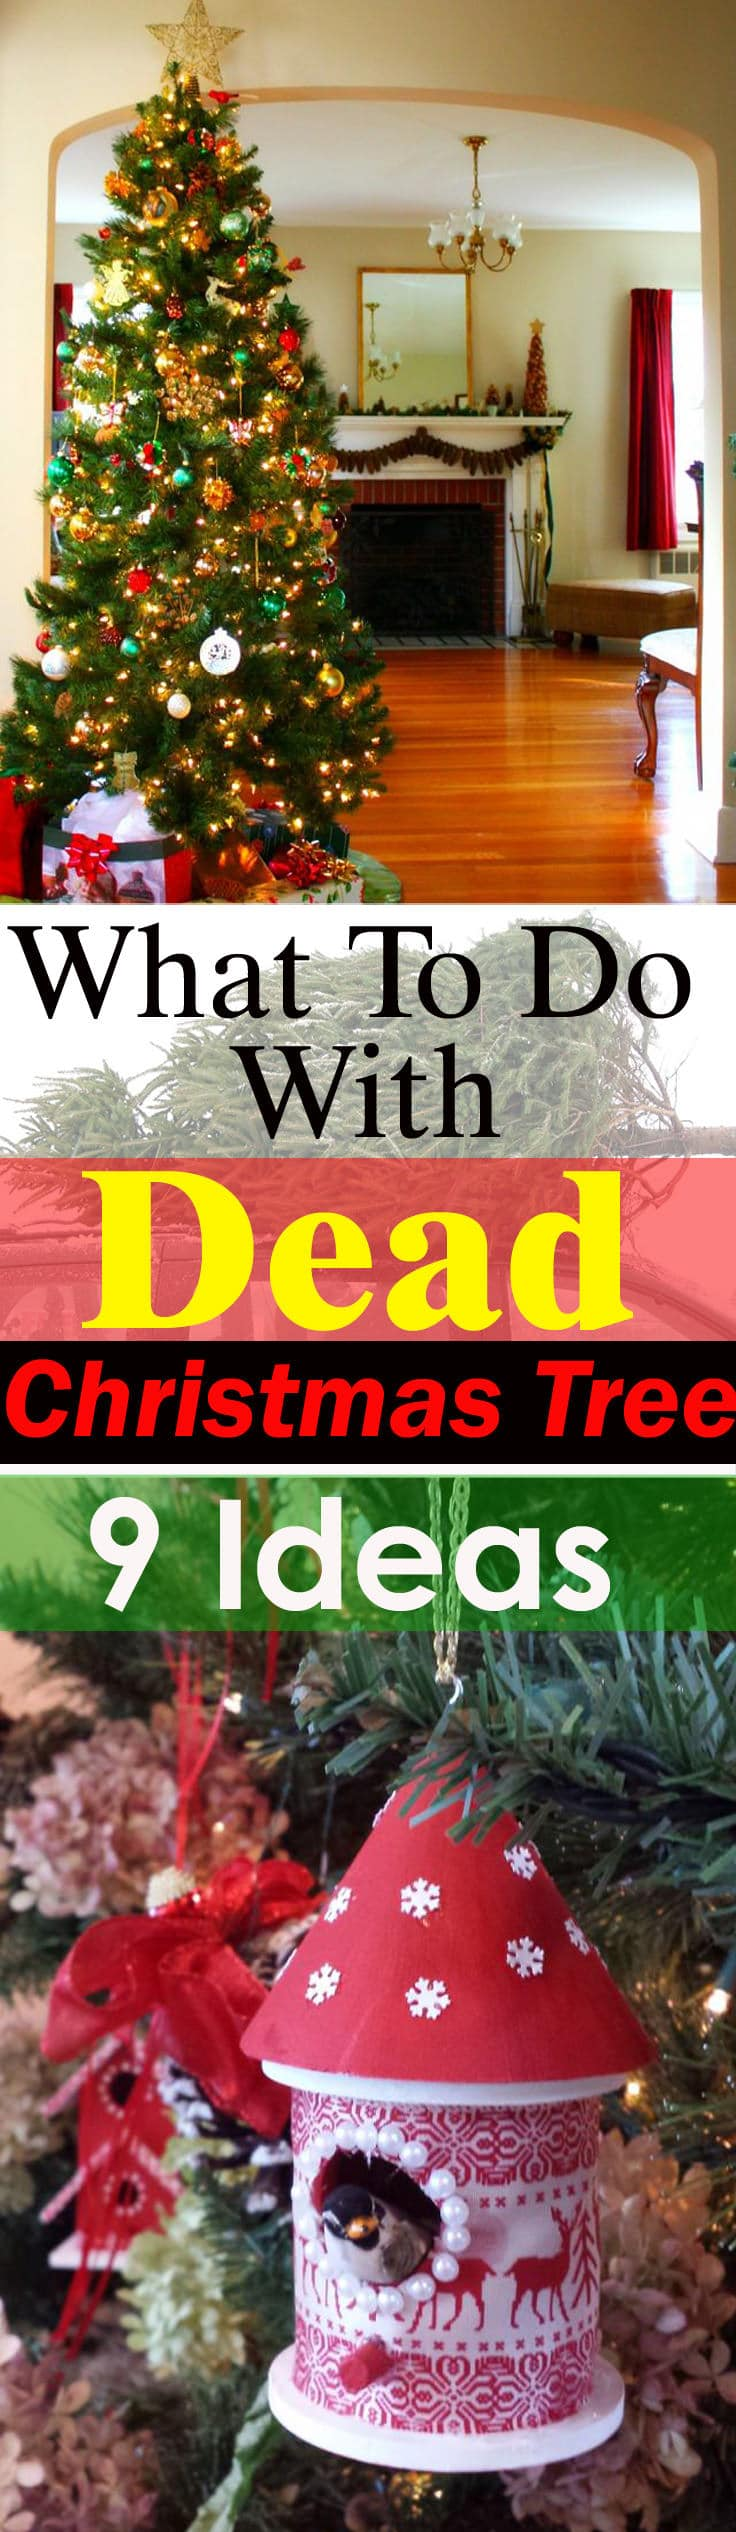 What to Do with Dead Christmas Tree? 9 Ideas | Balcony Garden Web